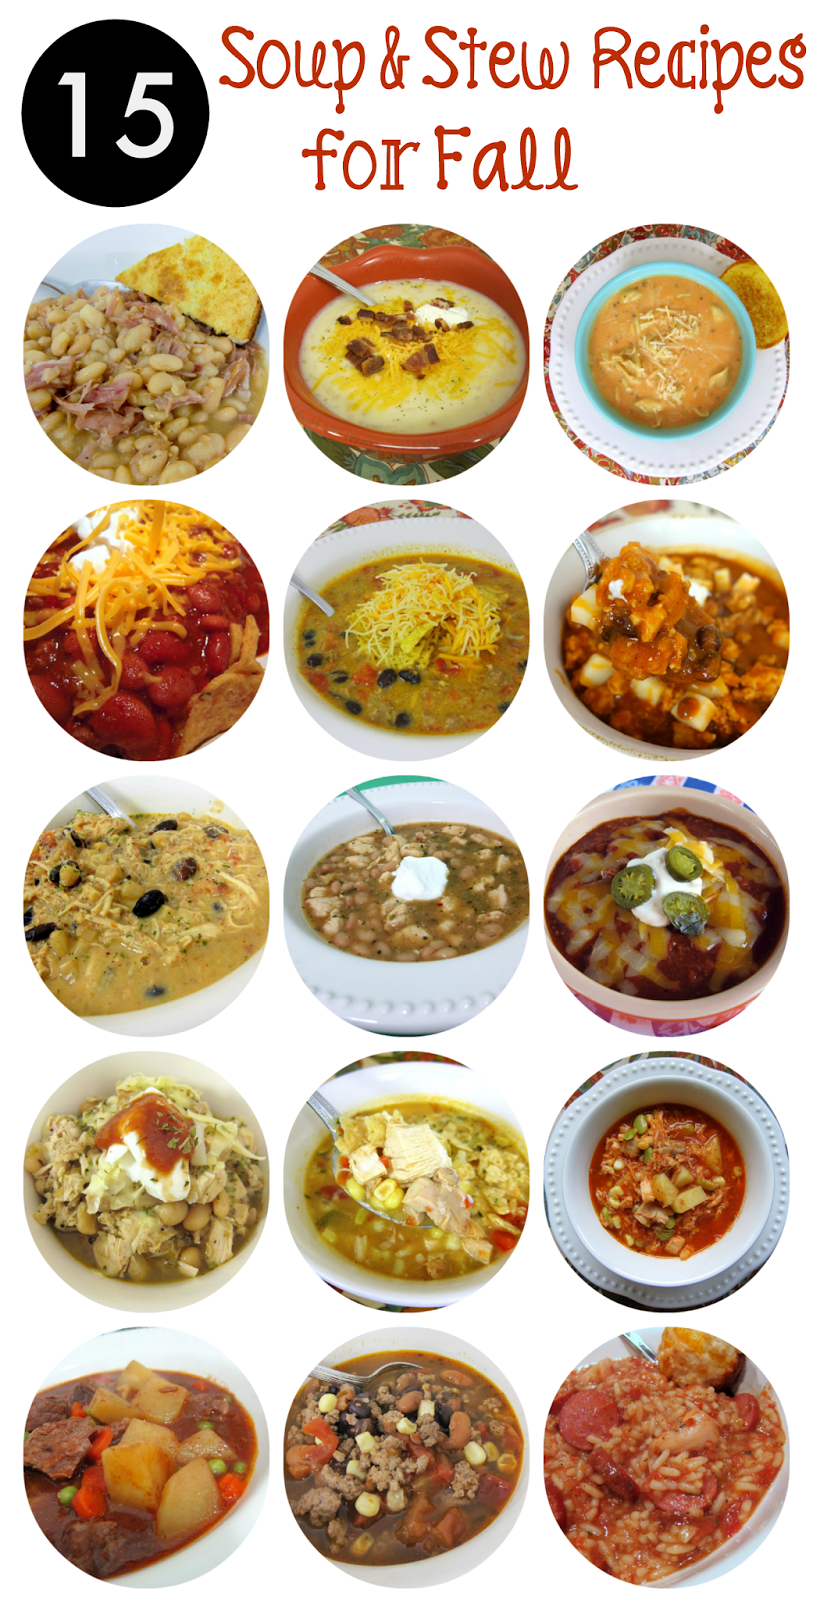 15 of my Favorite Soups & Stews | Plain Chicken